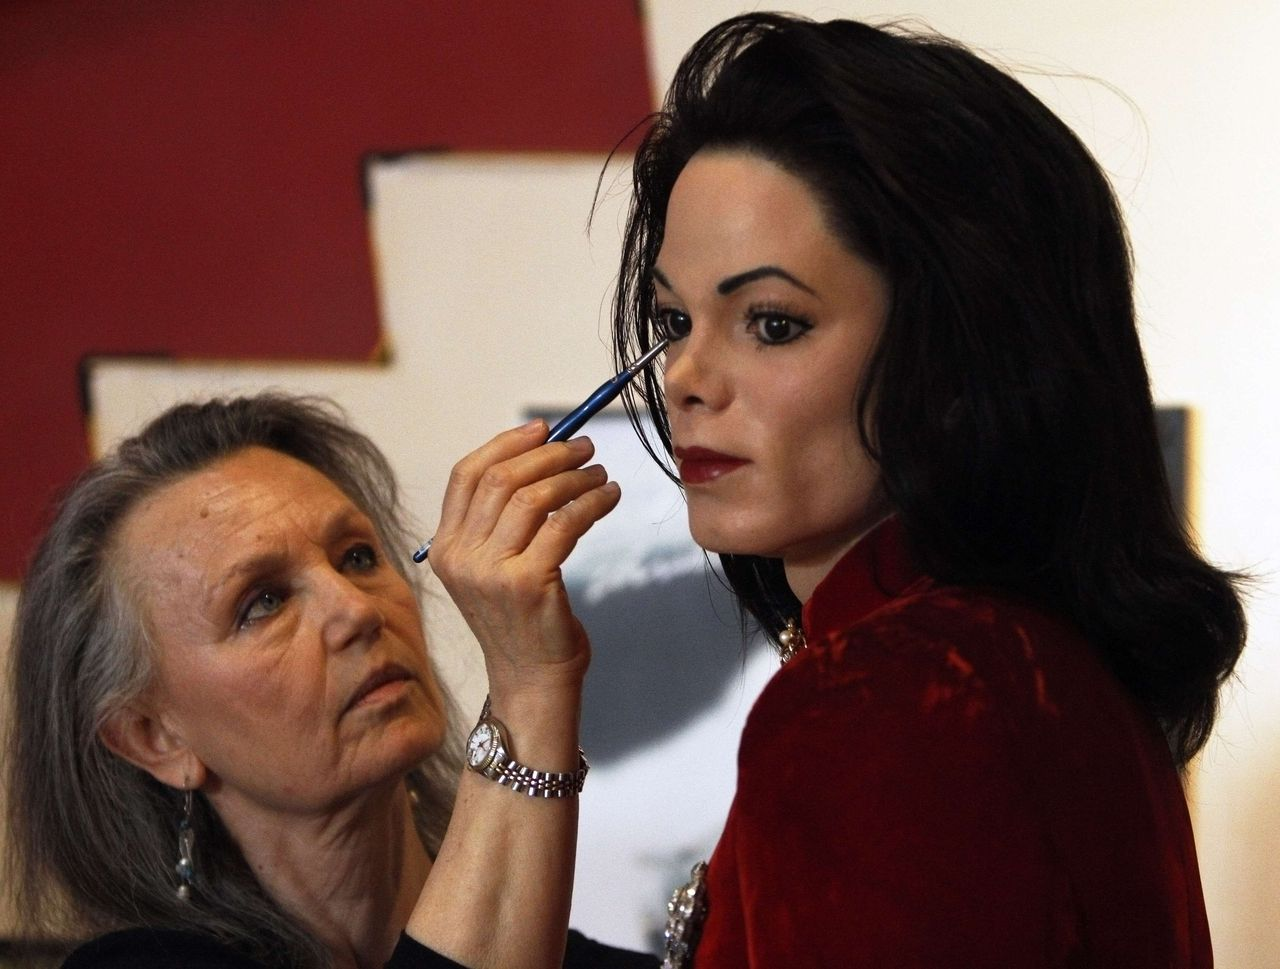 Artist Morfy Gikas touches up the Michael Jackson tribute exhibit at Madame Tussauds wax museum in New York June 23, 2010 ahead of the one year anniversary of Jackson's death on June 25. REUTERS/Lily Bowers (UNITED STATES - Tags: ANNIVERSARY ENTERTAINMENT)